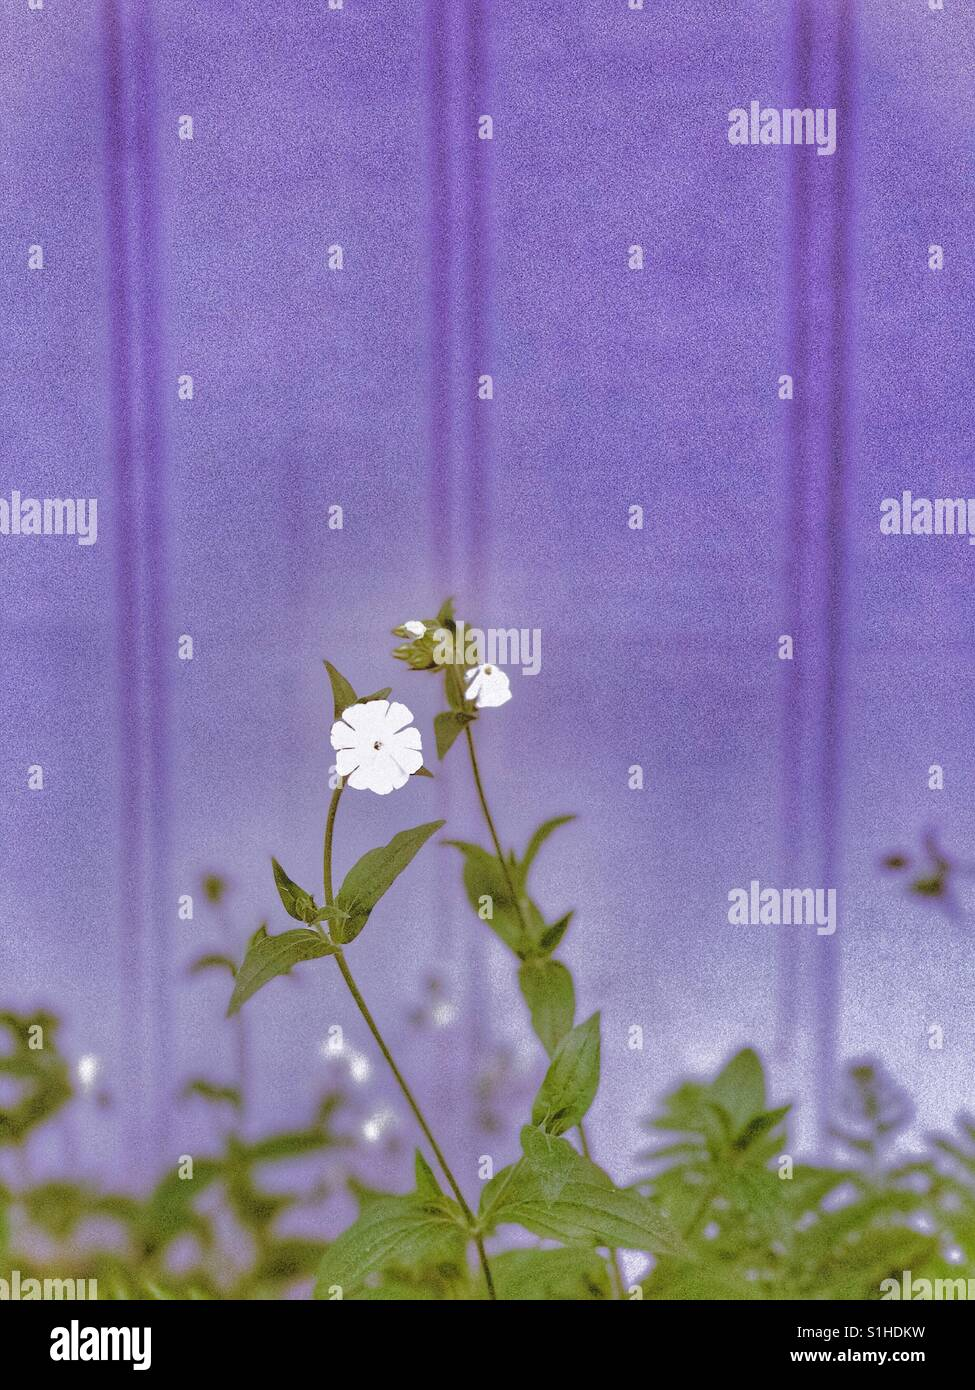 Pretty little white flowers against a periwinkle wall - Stock Image